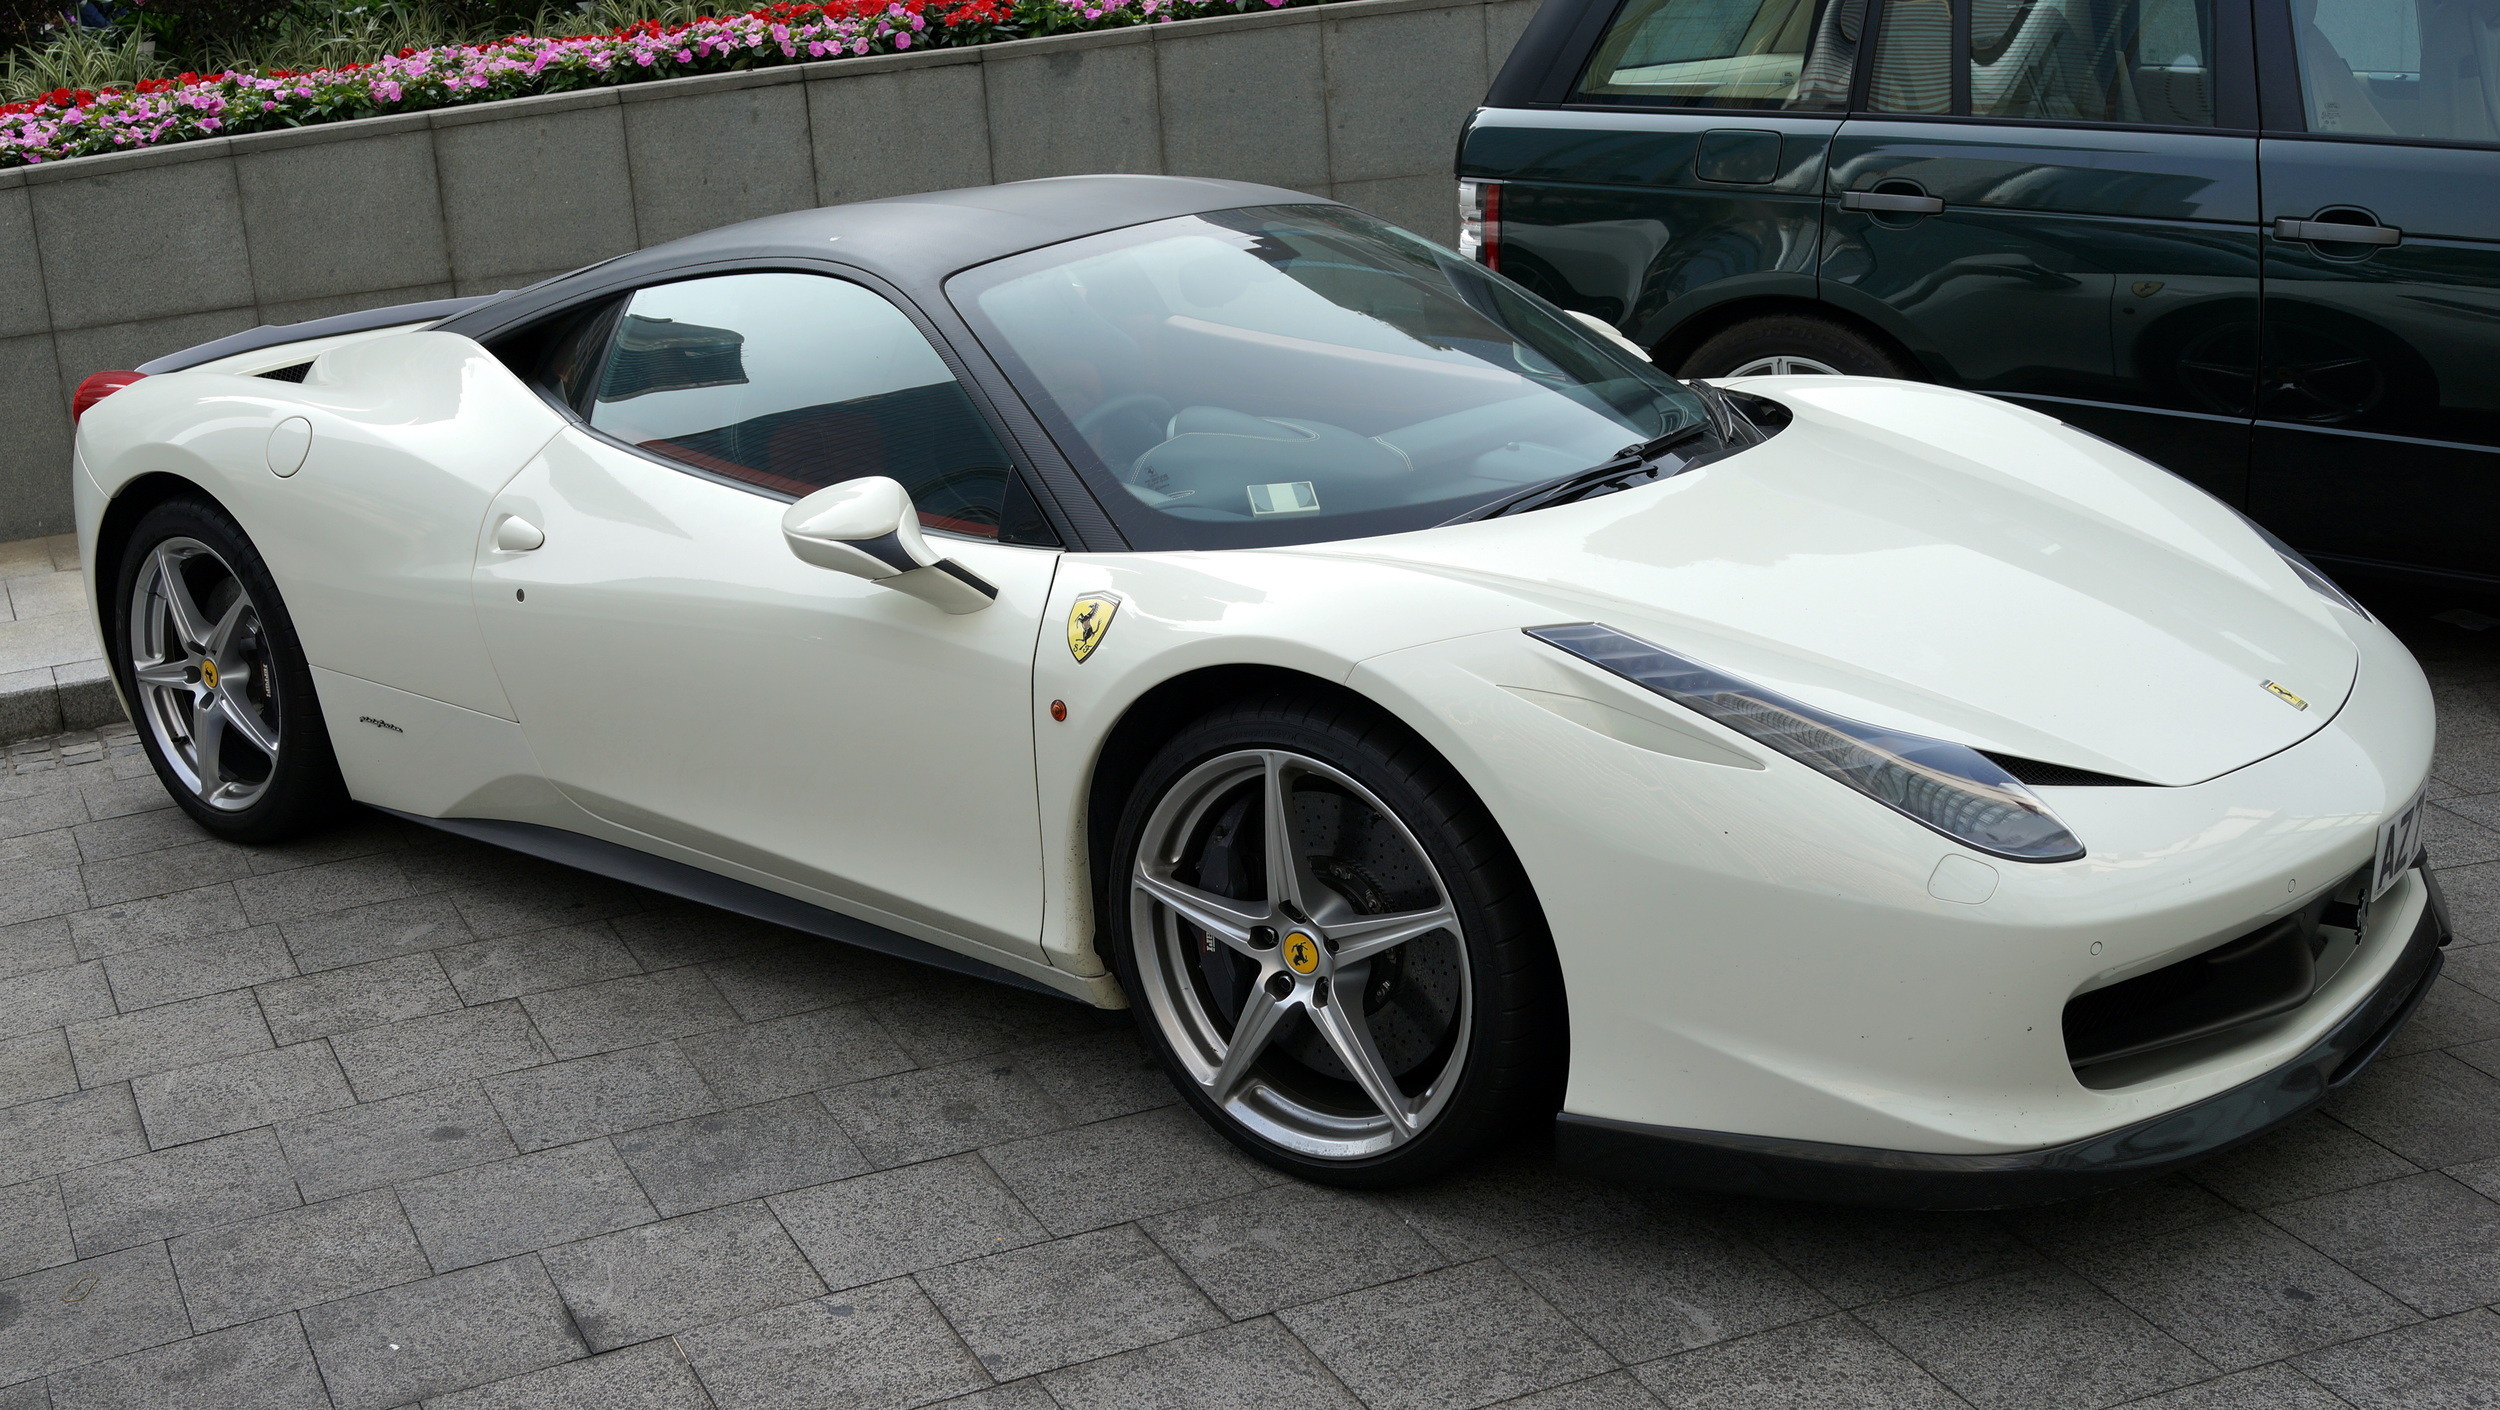 My 3rd Ferrari of the day - this one is always parked outside the Four Seasons Hotel in Central